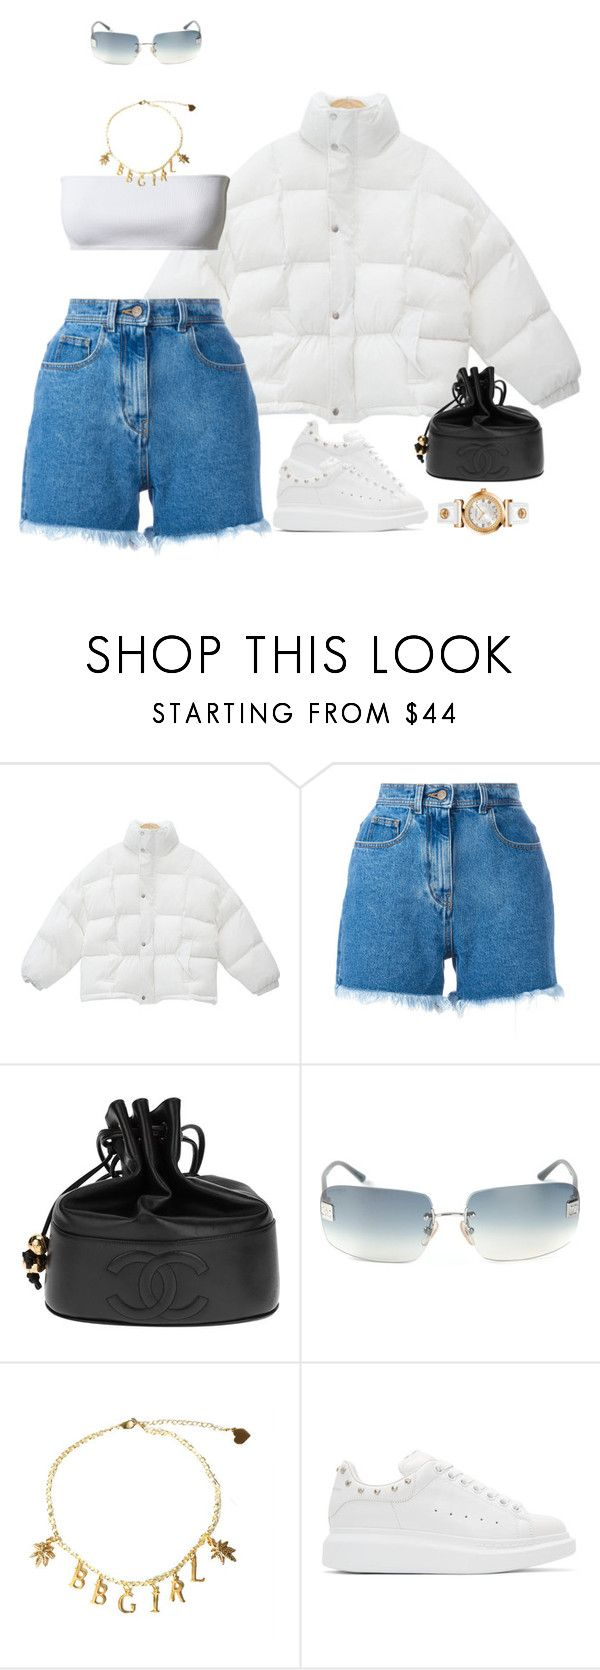 """Game 4"" by oh-aurora ❤ liked on Polyvore featuring Philosophy di Lorenzo Serafini, Chanel, Alexander McQueen and Versace"